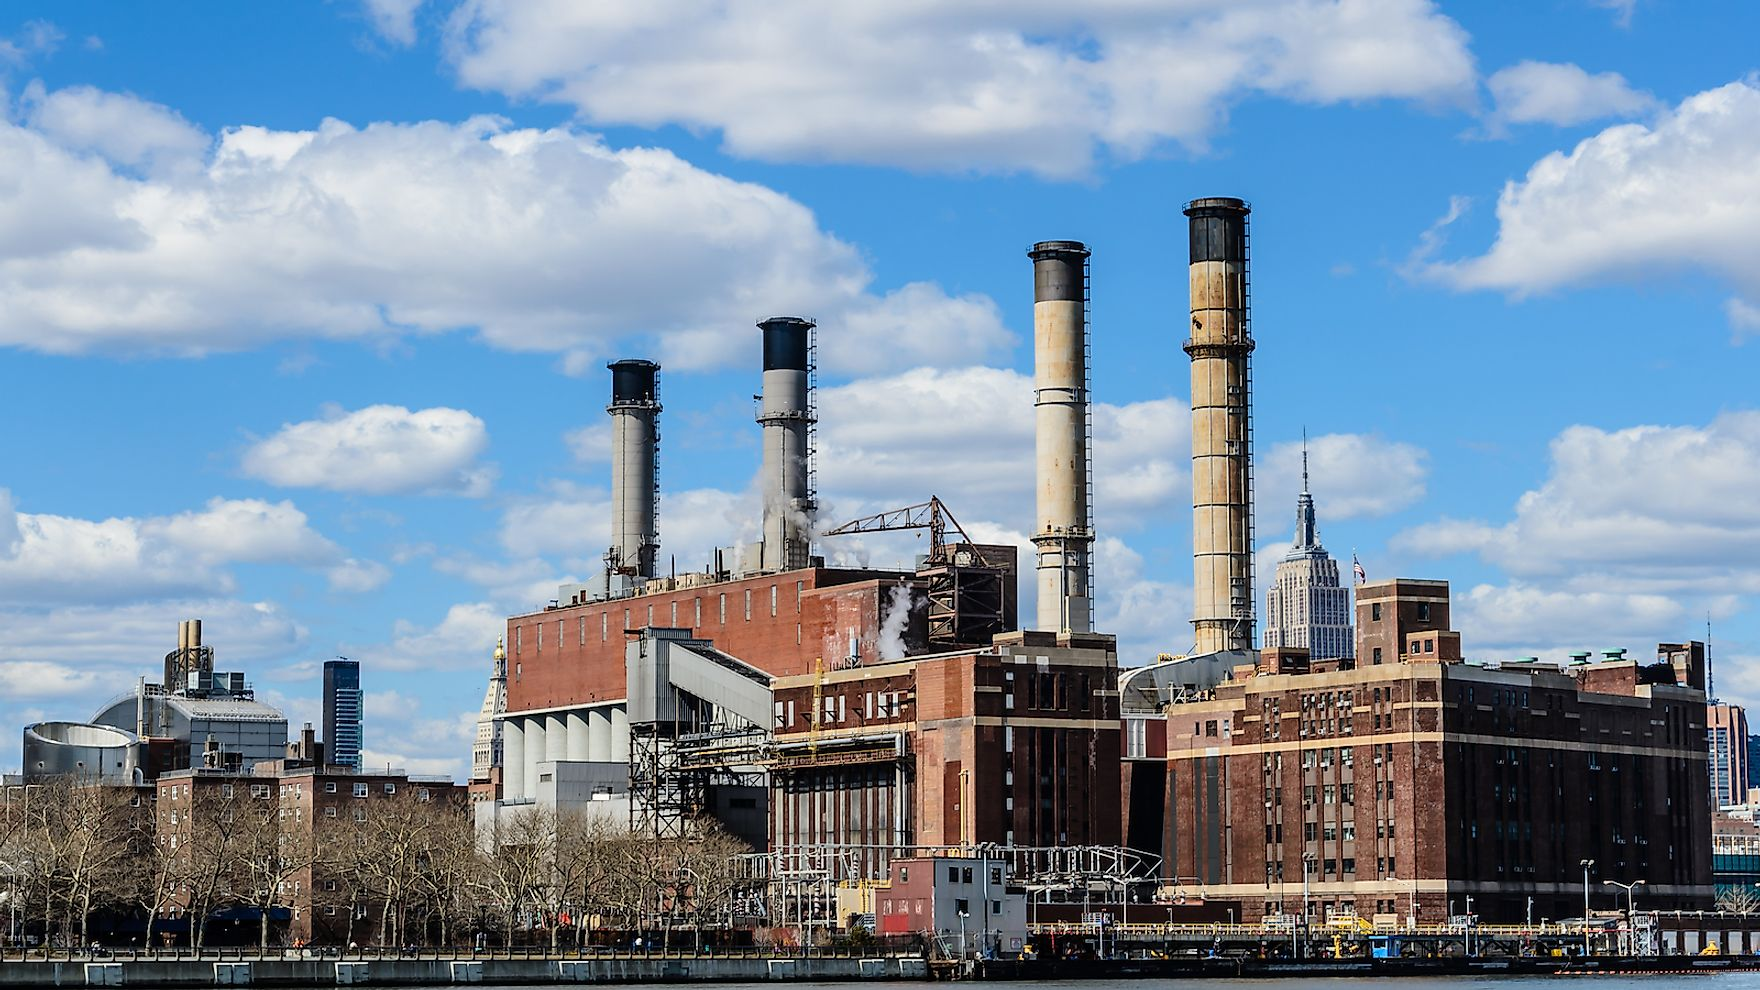 Industrial buildings in Manhattan, New York, USA.